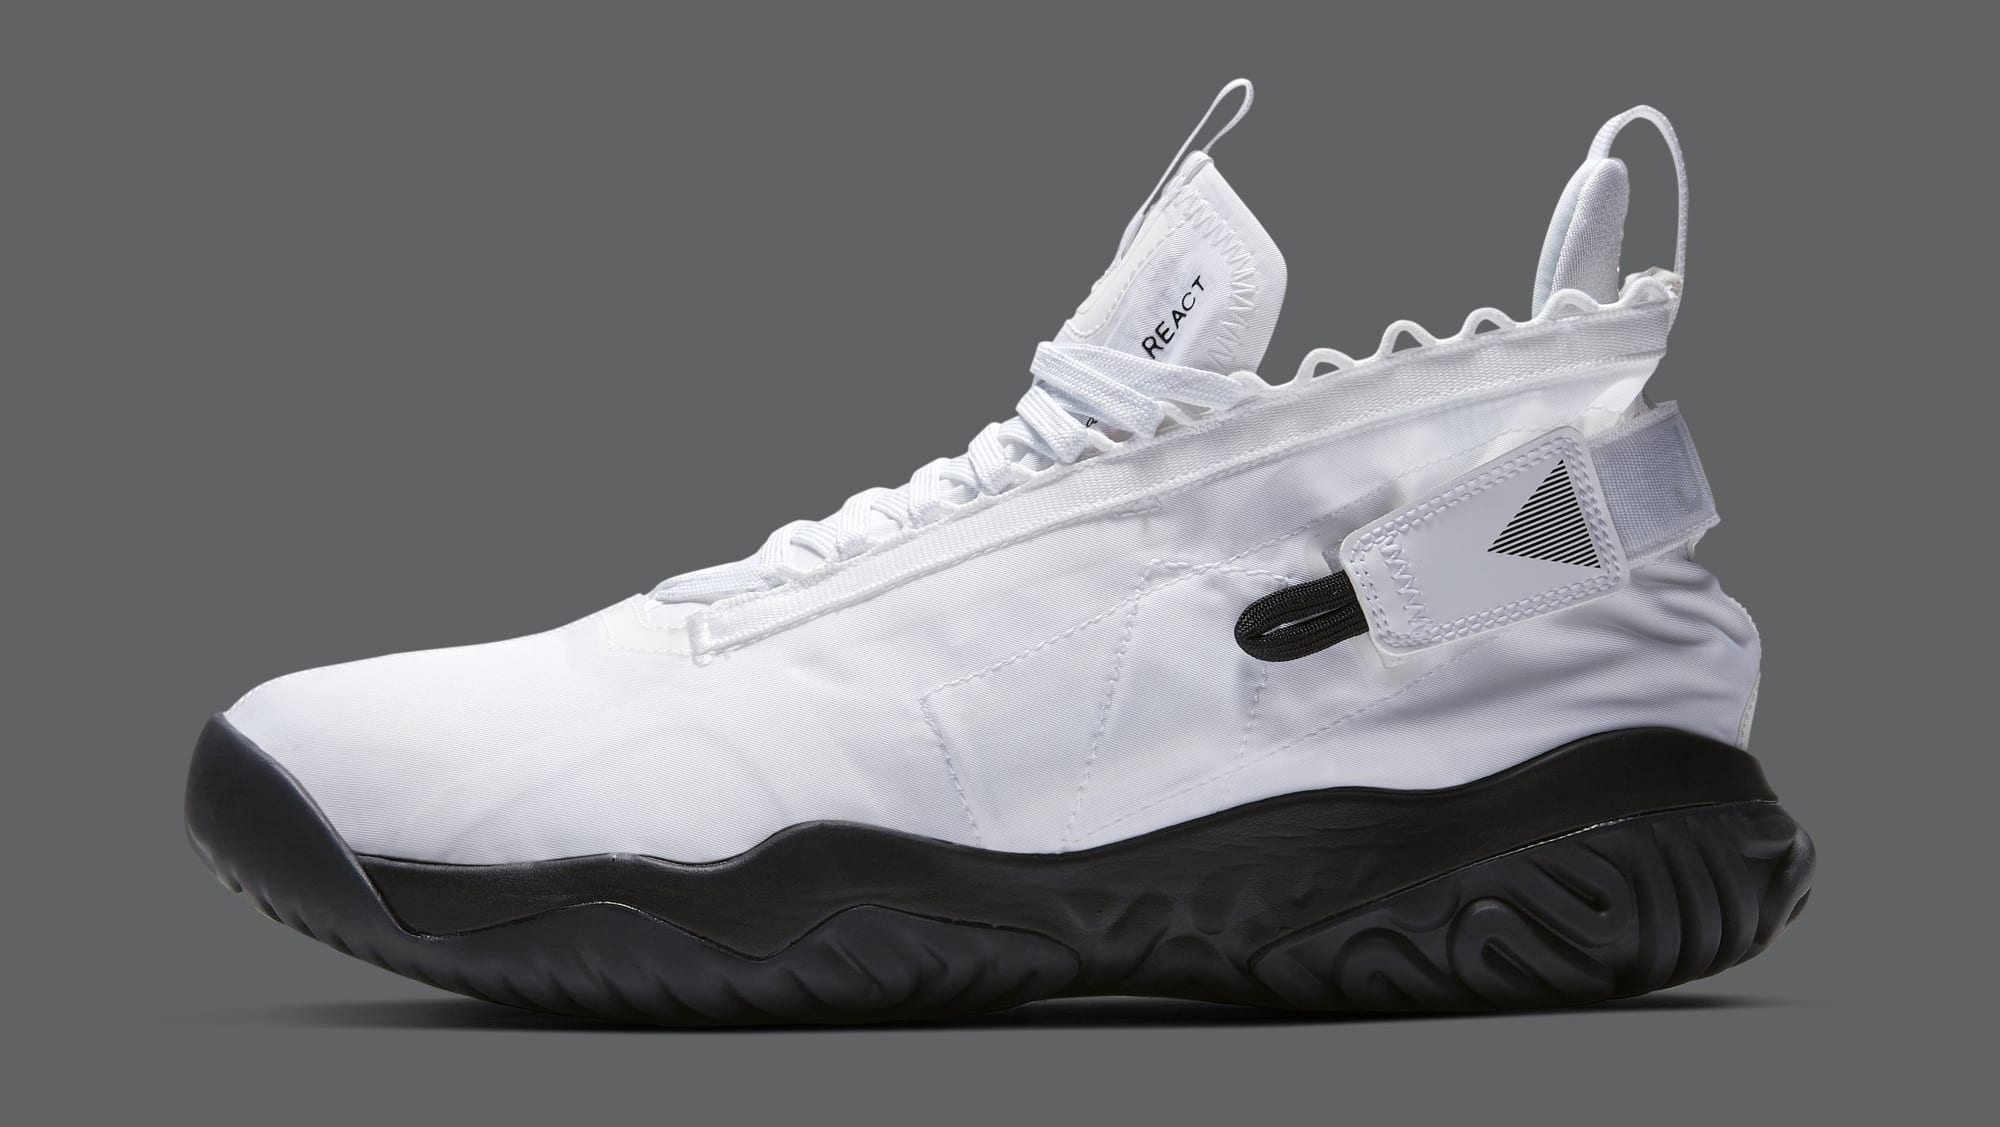 18989a67f4b Image via Nike Jordan Proto React 'White/Black' BV1654-100 (Lateral)